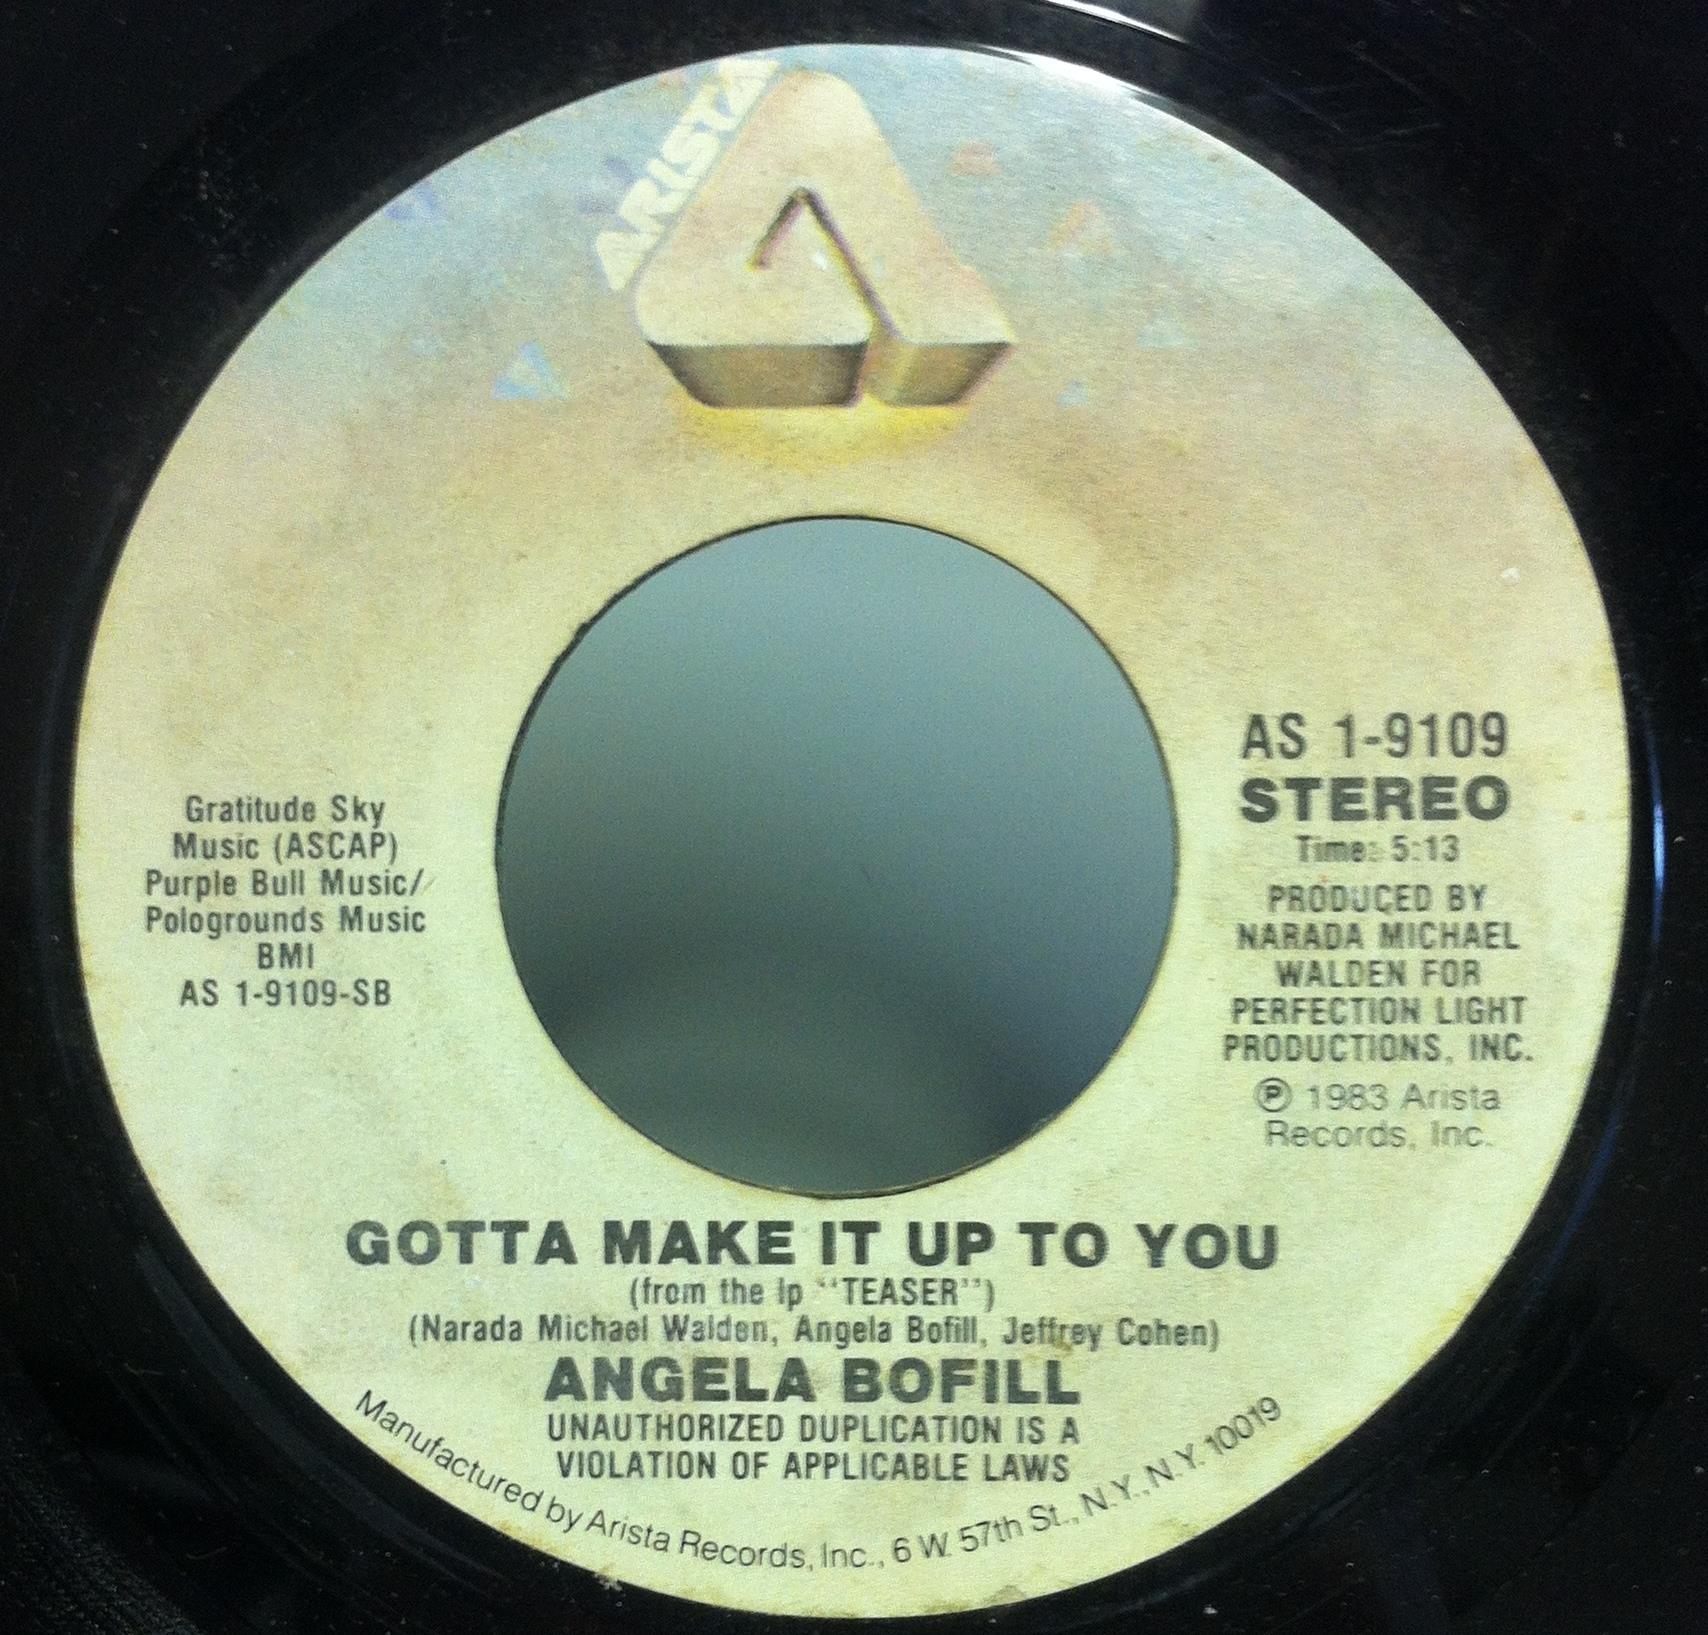 "Angela Bofill - Angela Bofill I'm On Your Side/gotta Make It Up To You 7"" Vg+ As-1-9109 Soul 45 (i'm On Your Si"